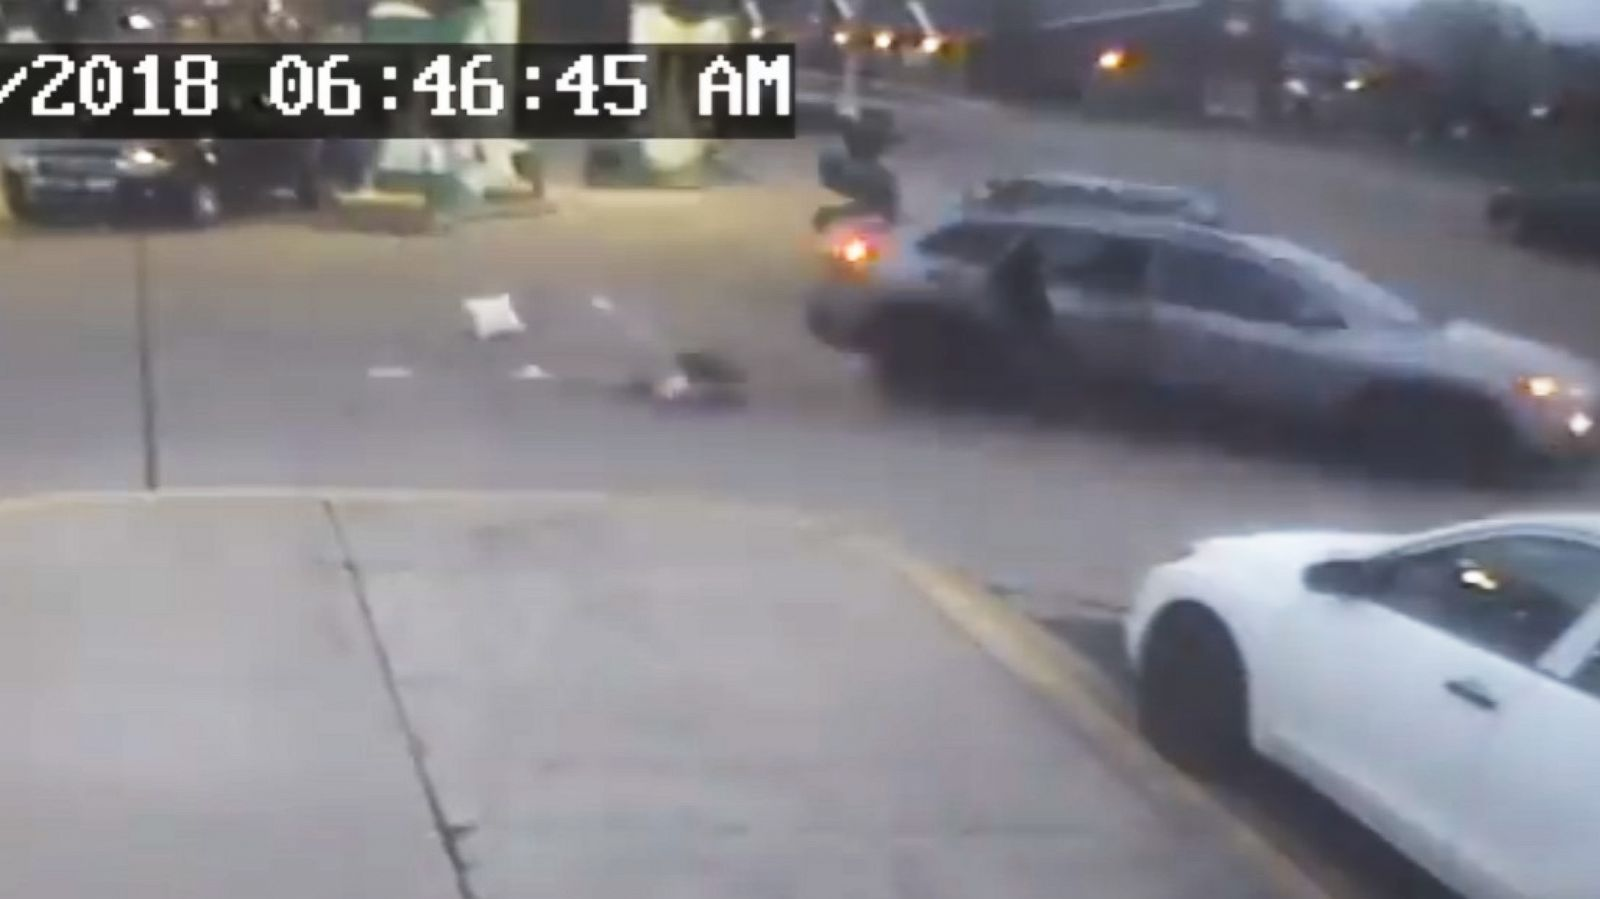 11-year-old girl seen jumping out of suv amid carjacking at gas